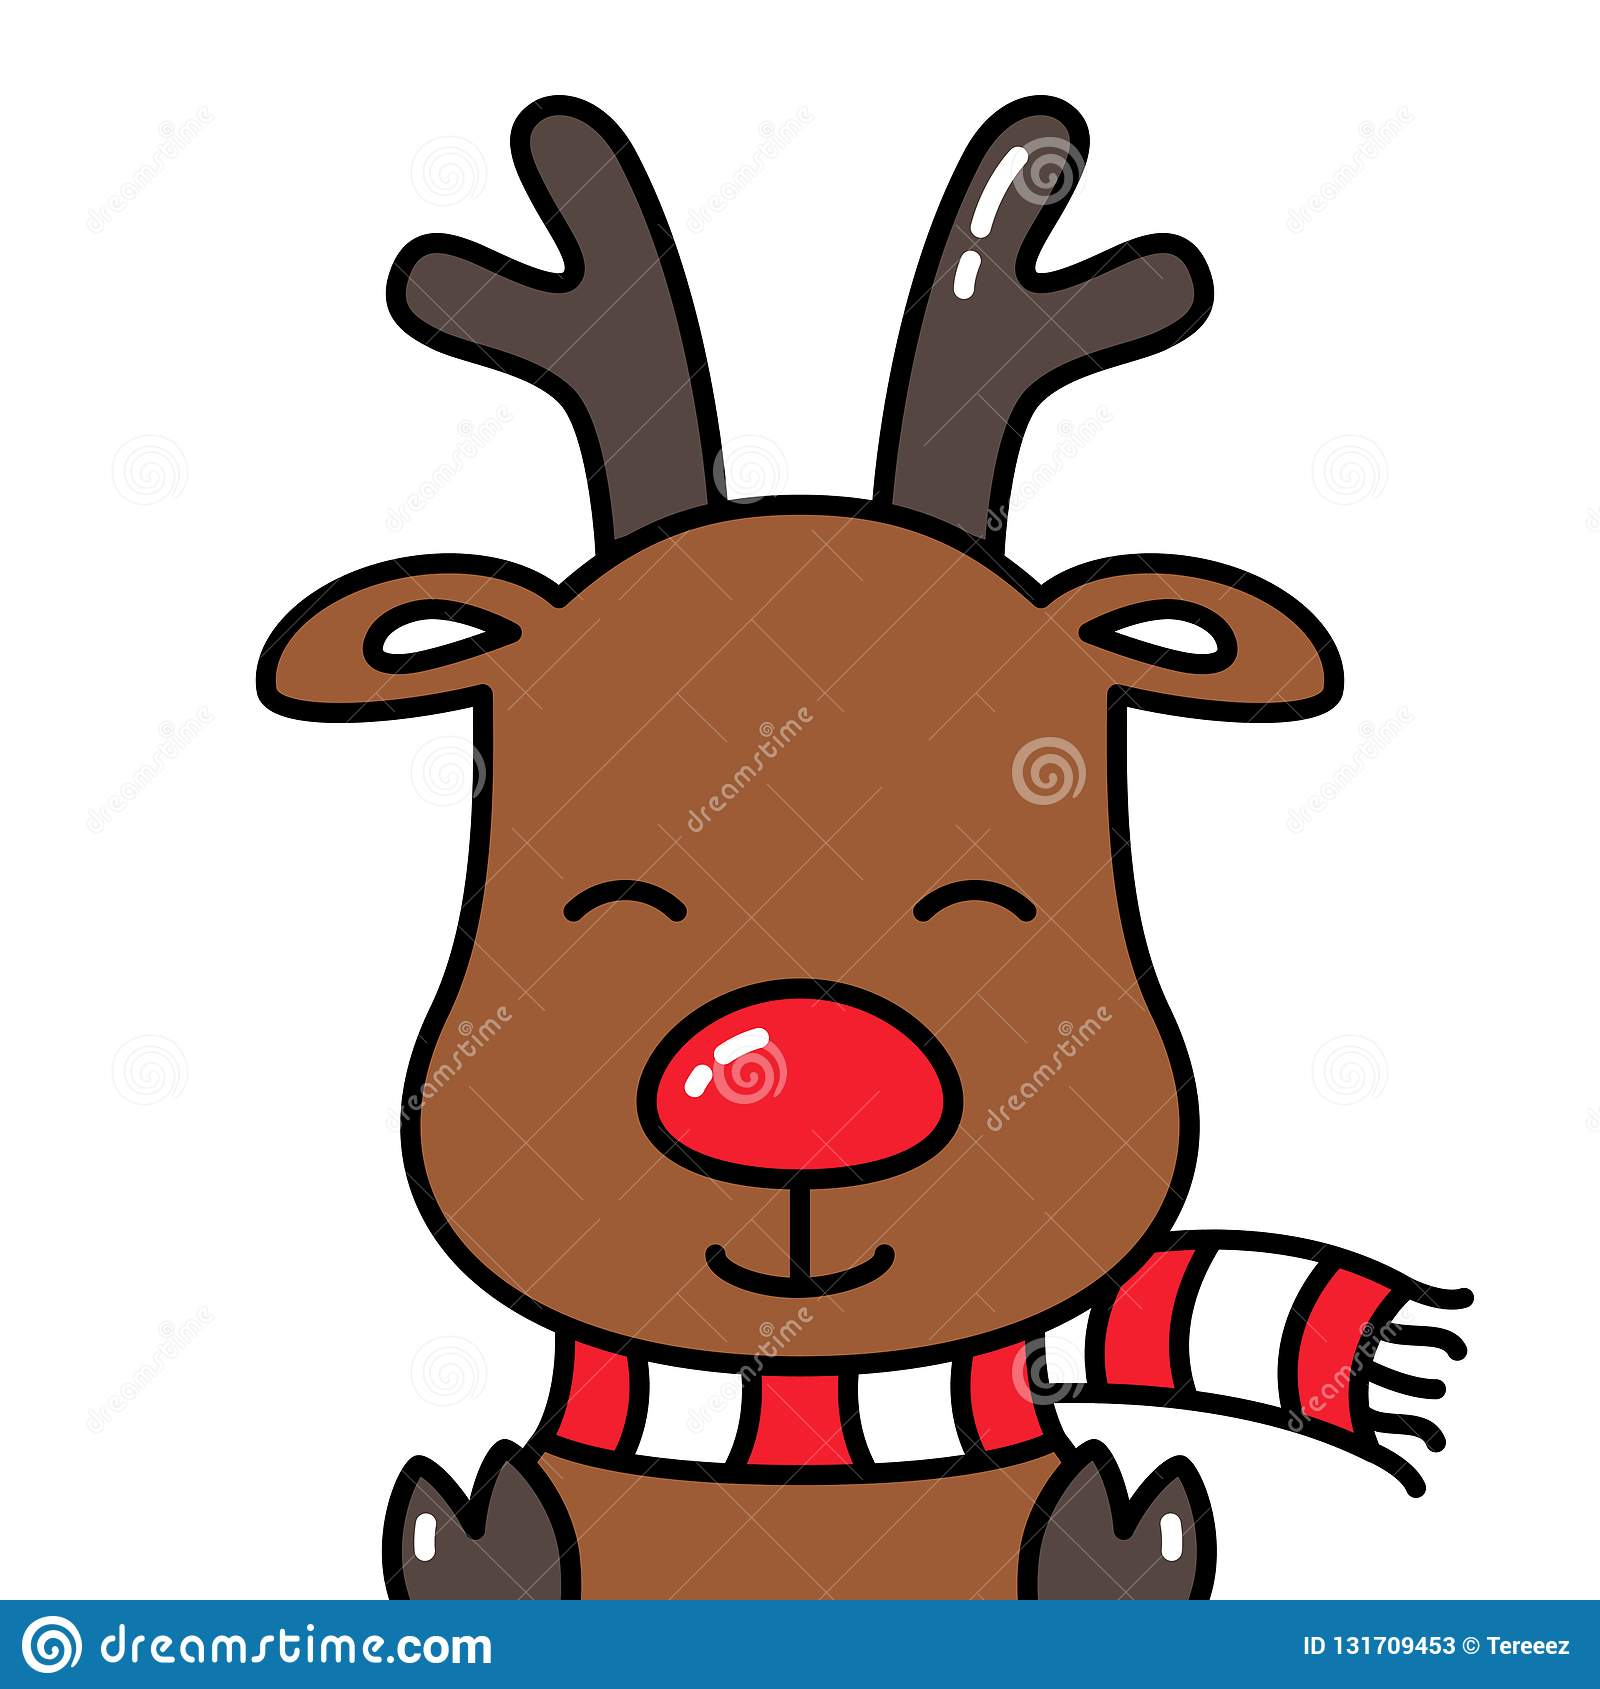 Rudolph Head Stock Illustrations 259 Rudolph Head Stock Illustrations Vectors Clipart Dreamstime